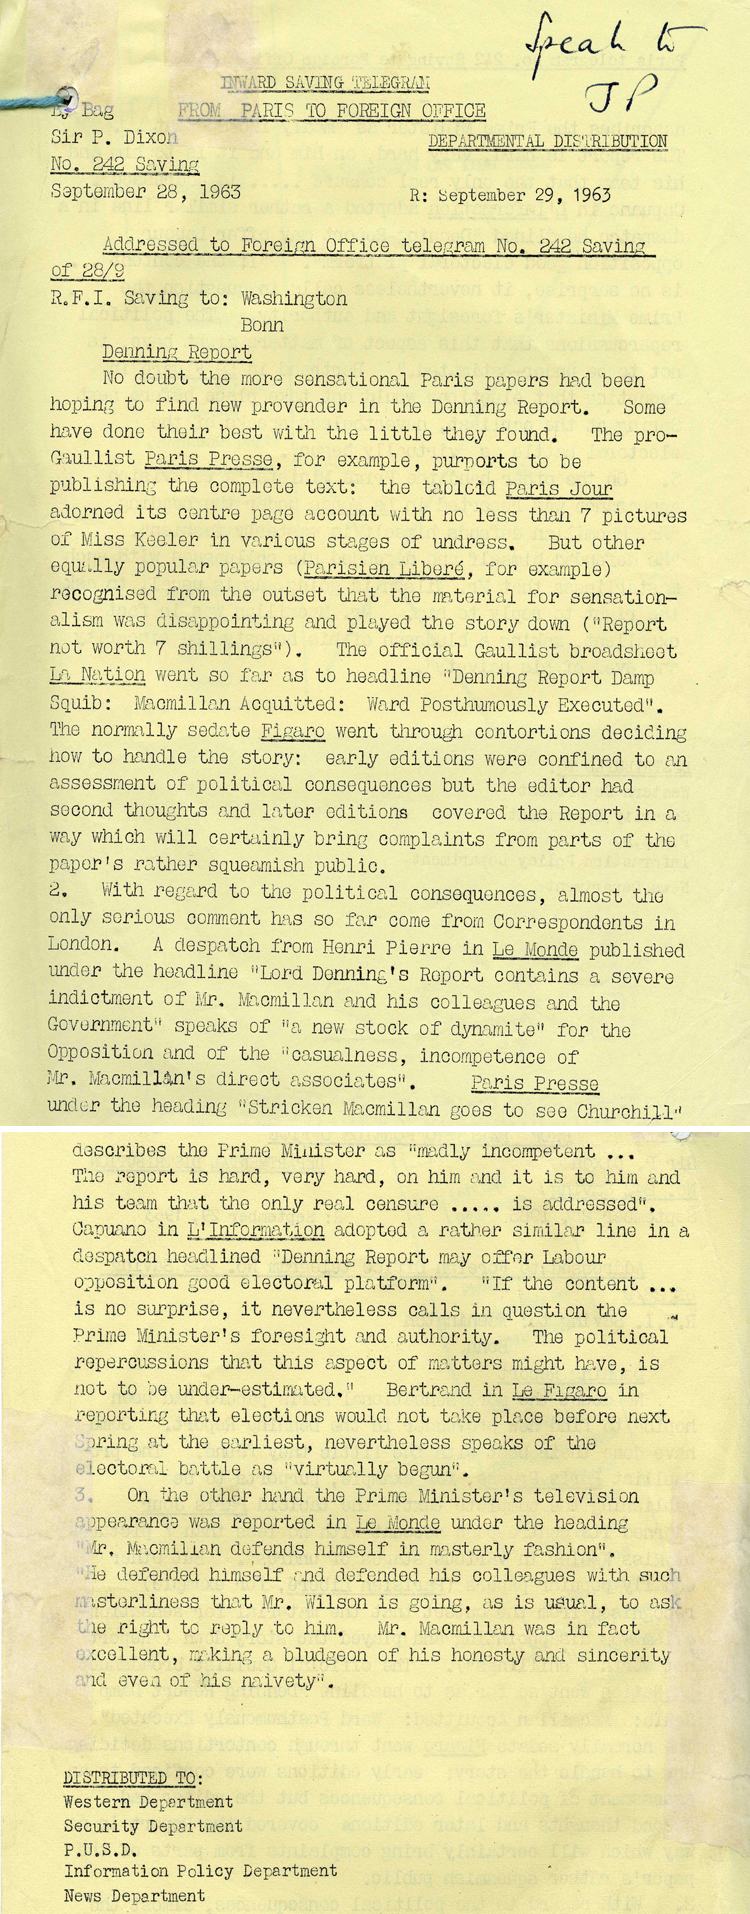 Telegram from the British Embassy in Paris to the Foreign Office about the publication of the Denning Report on the Profumo affair and its impact in the Parisian press, September 1963 (FO 953/2108)